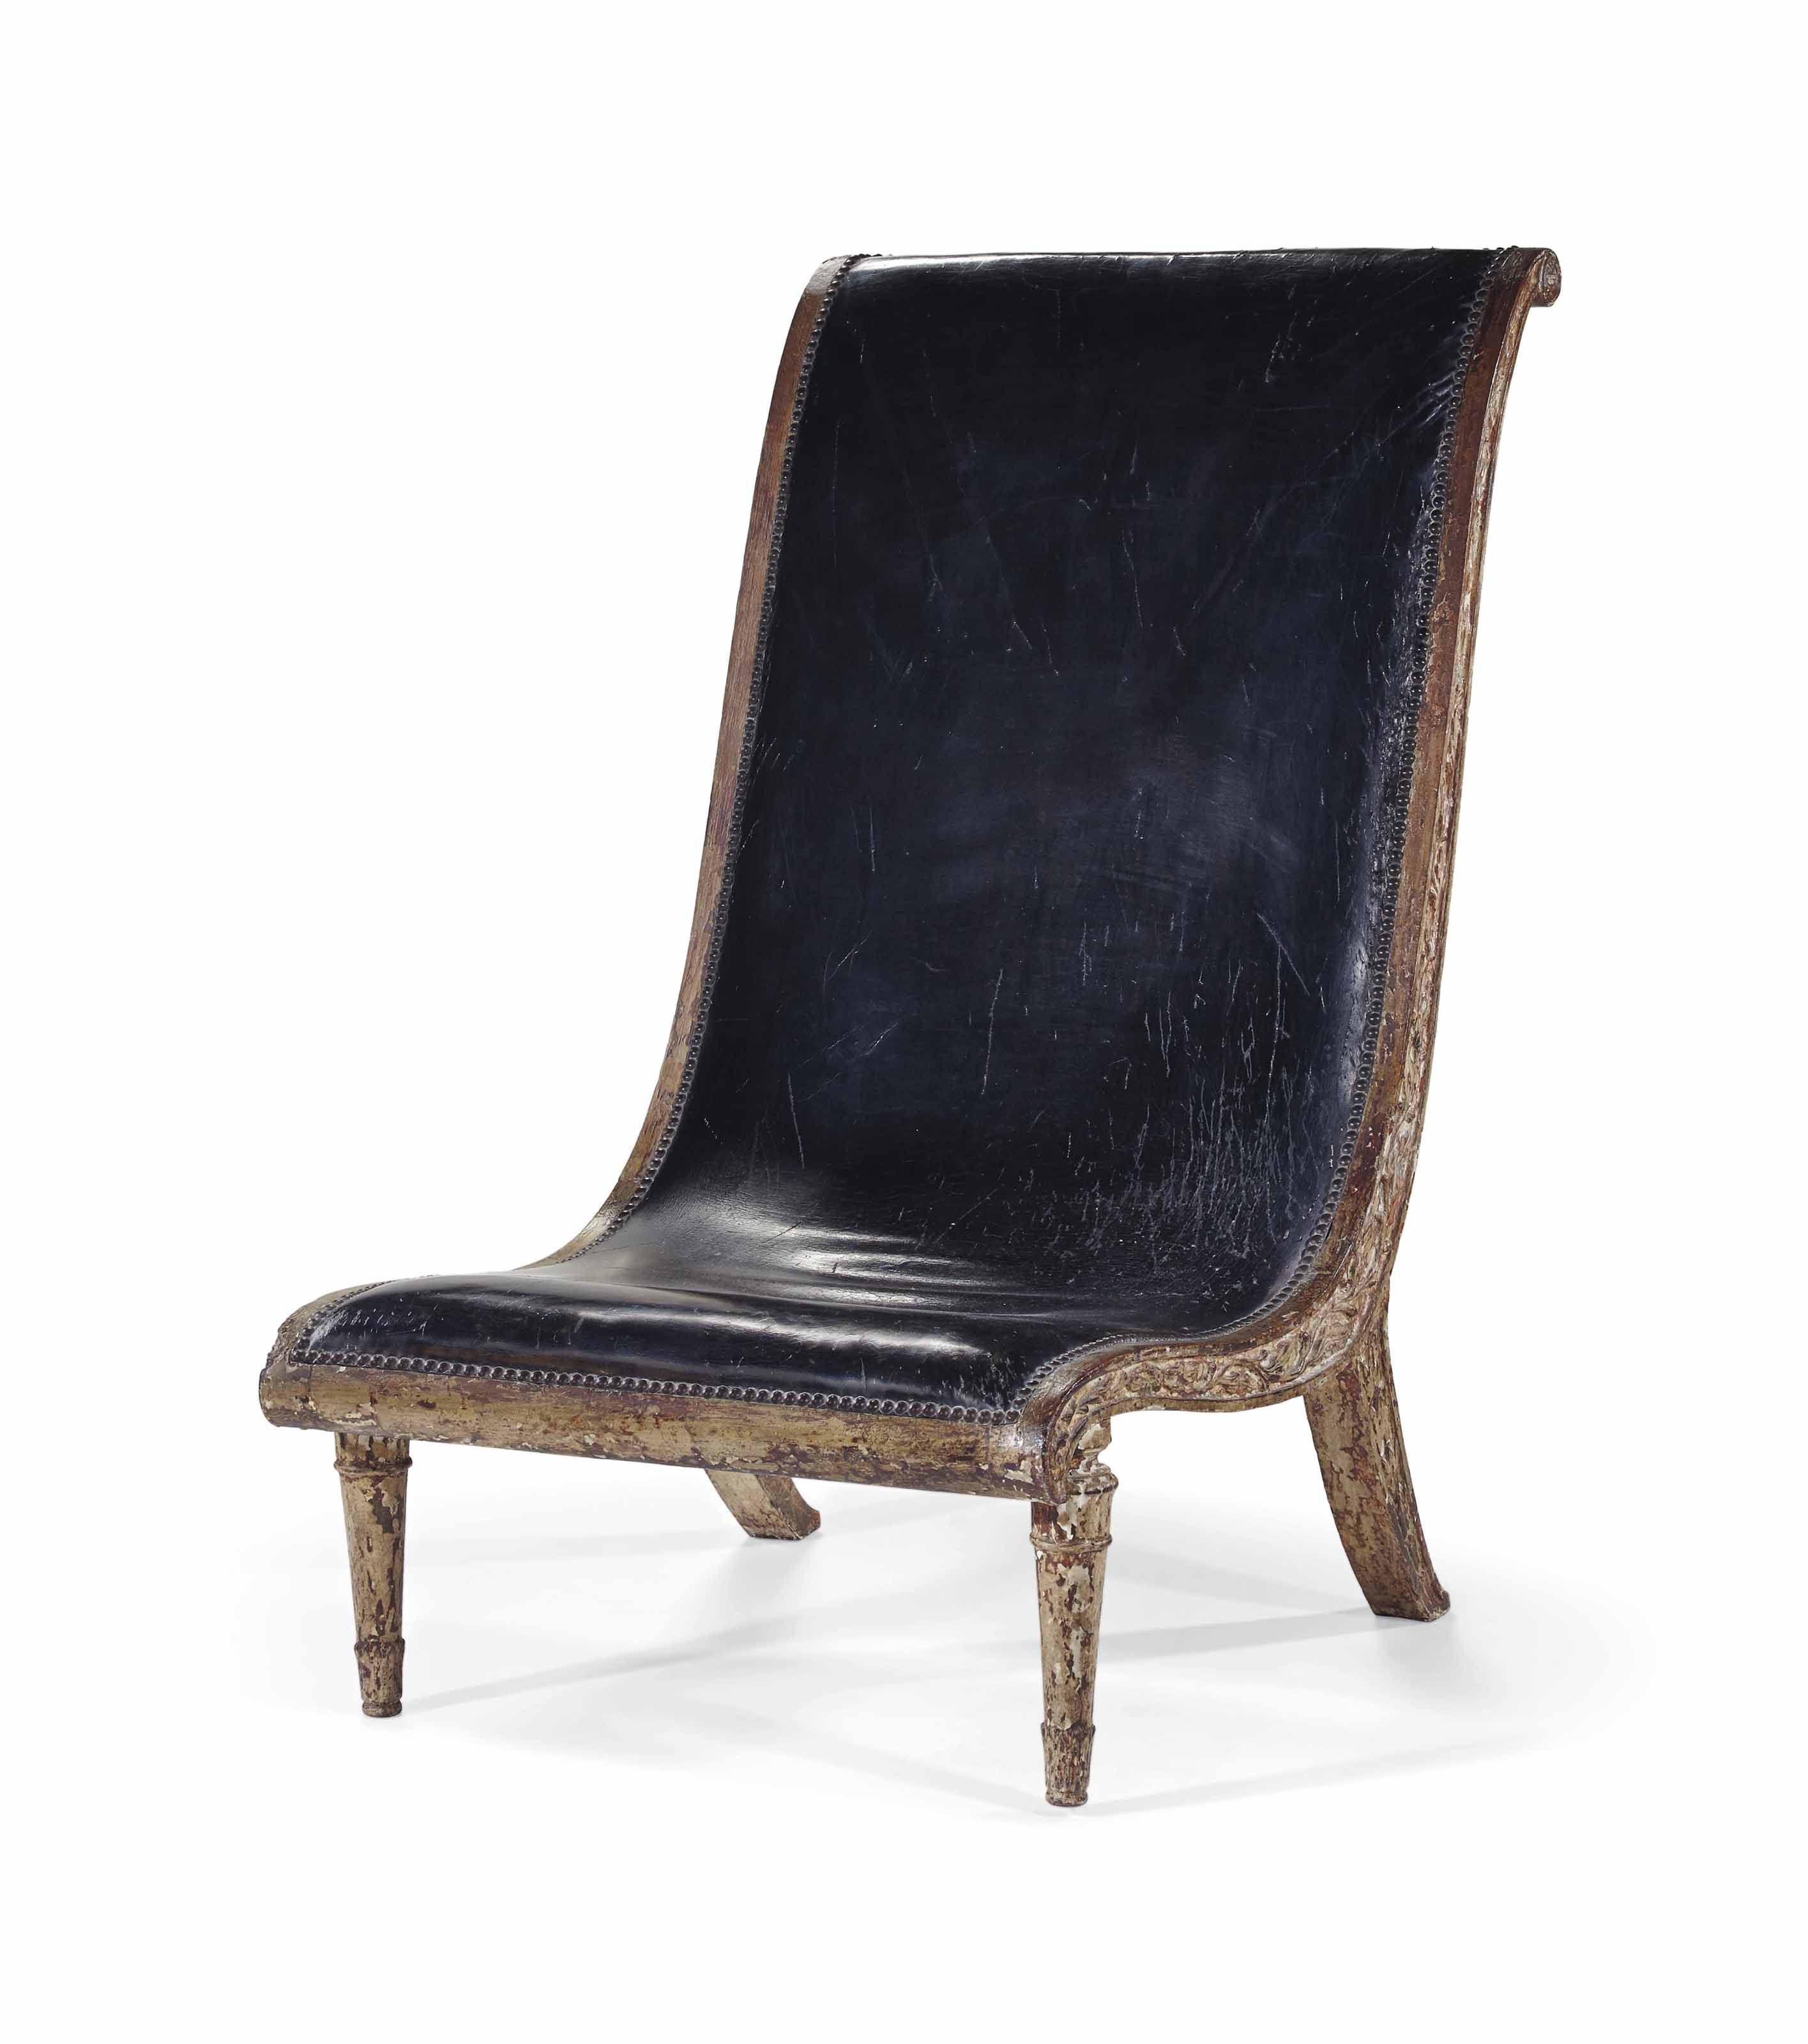 Chaise Basse Chaise Basse Neoclassique Europe Du Nord Xixeme Siecle